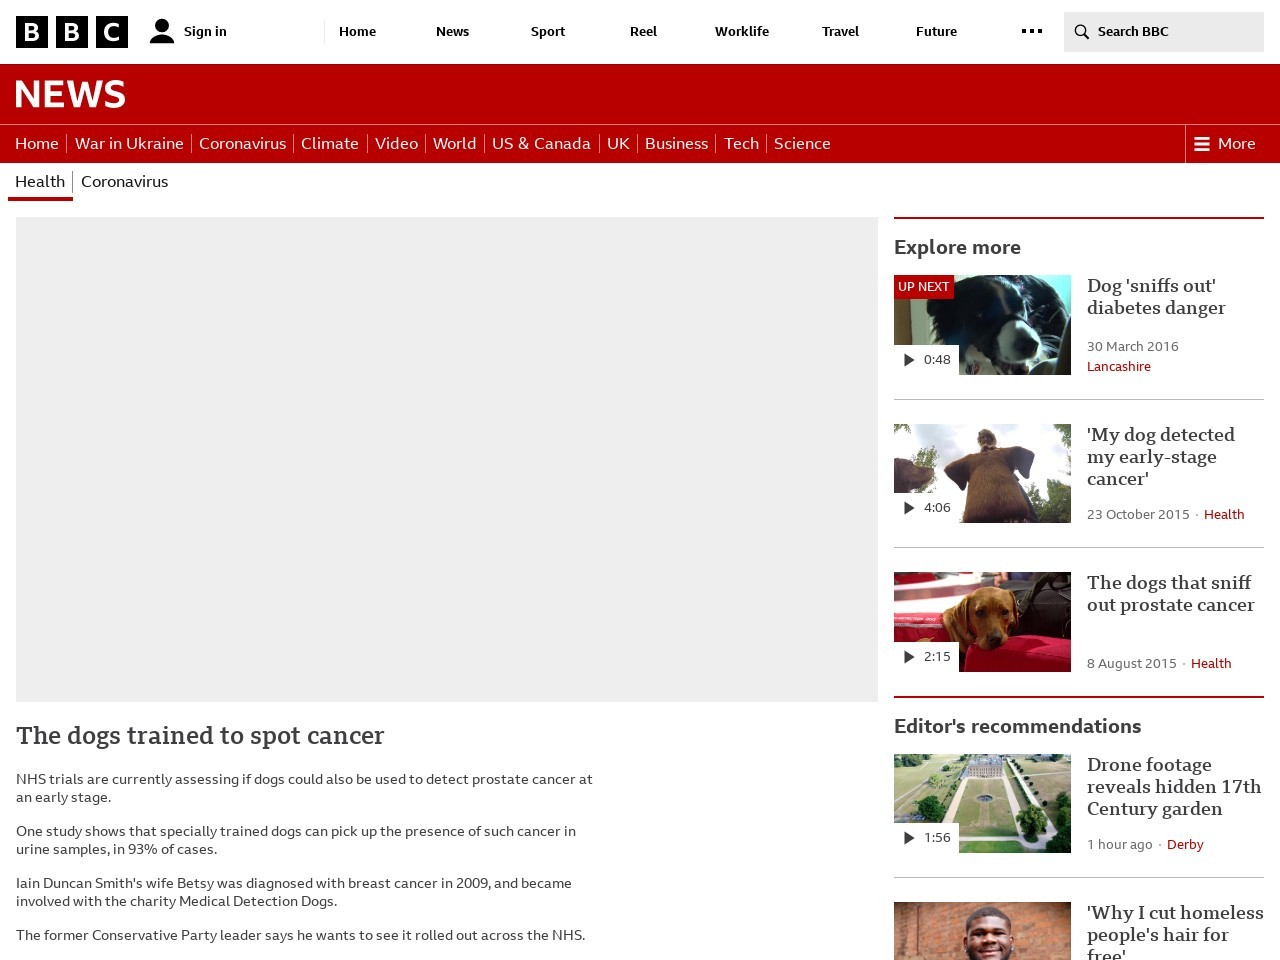 The dogs trained to spot cancer